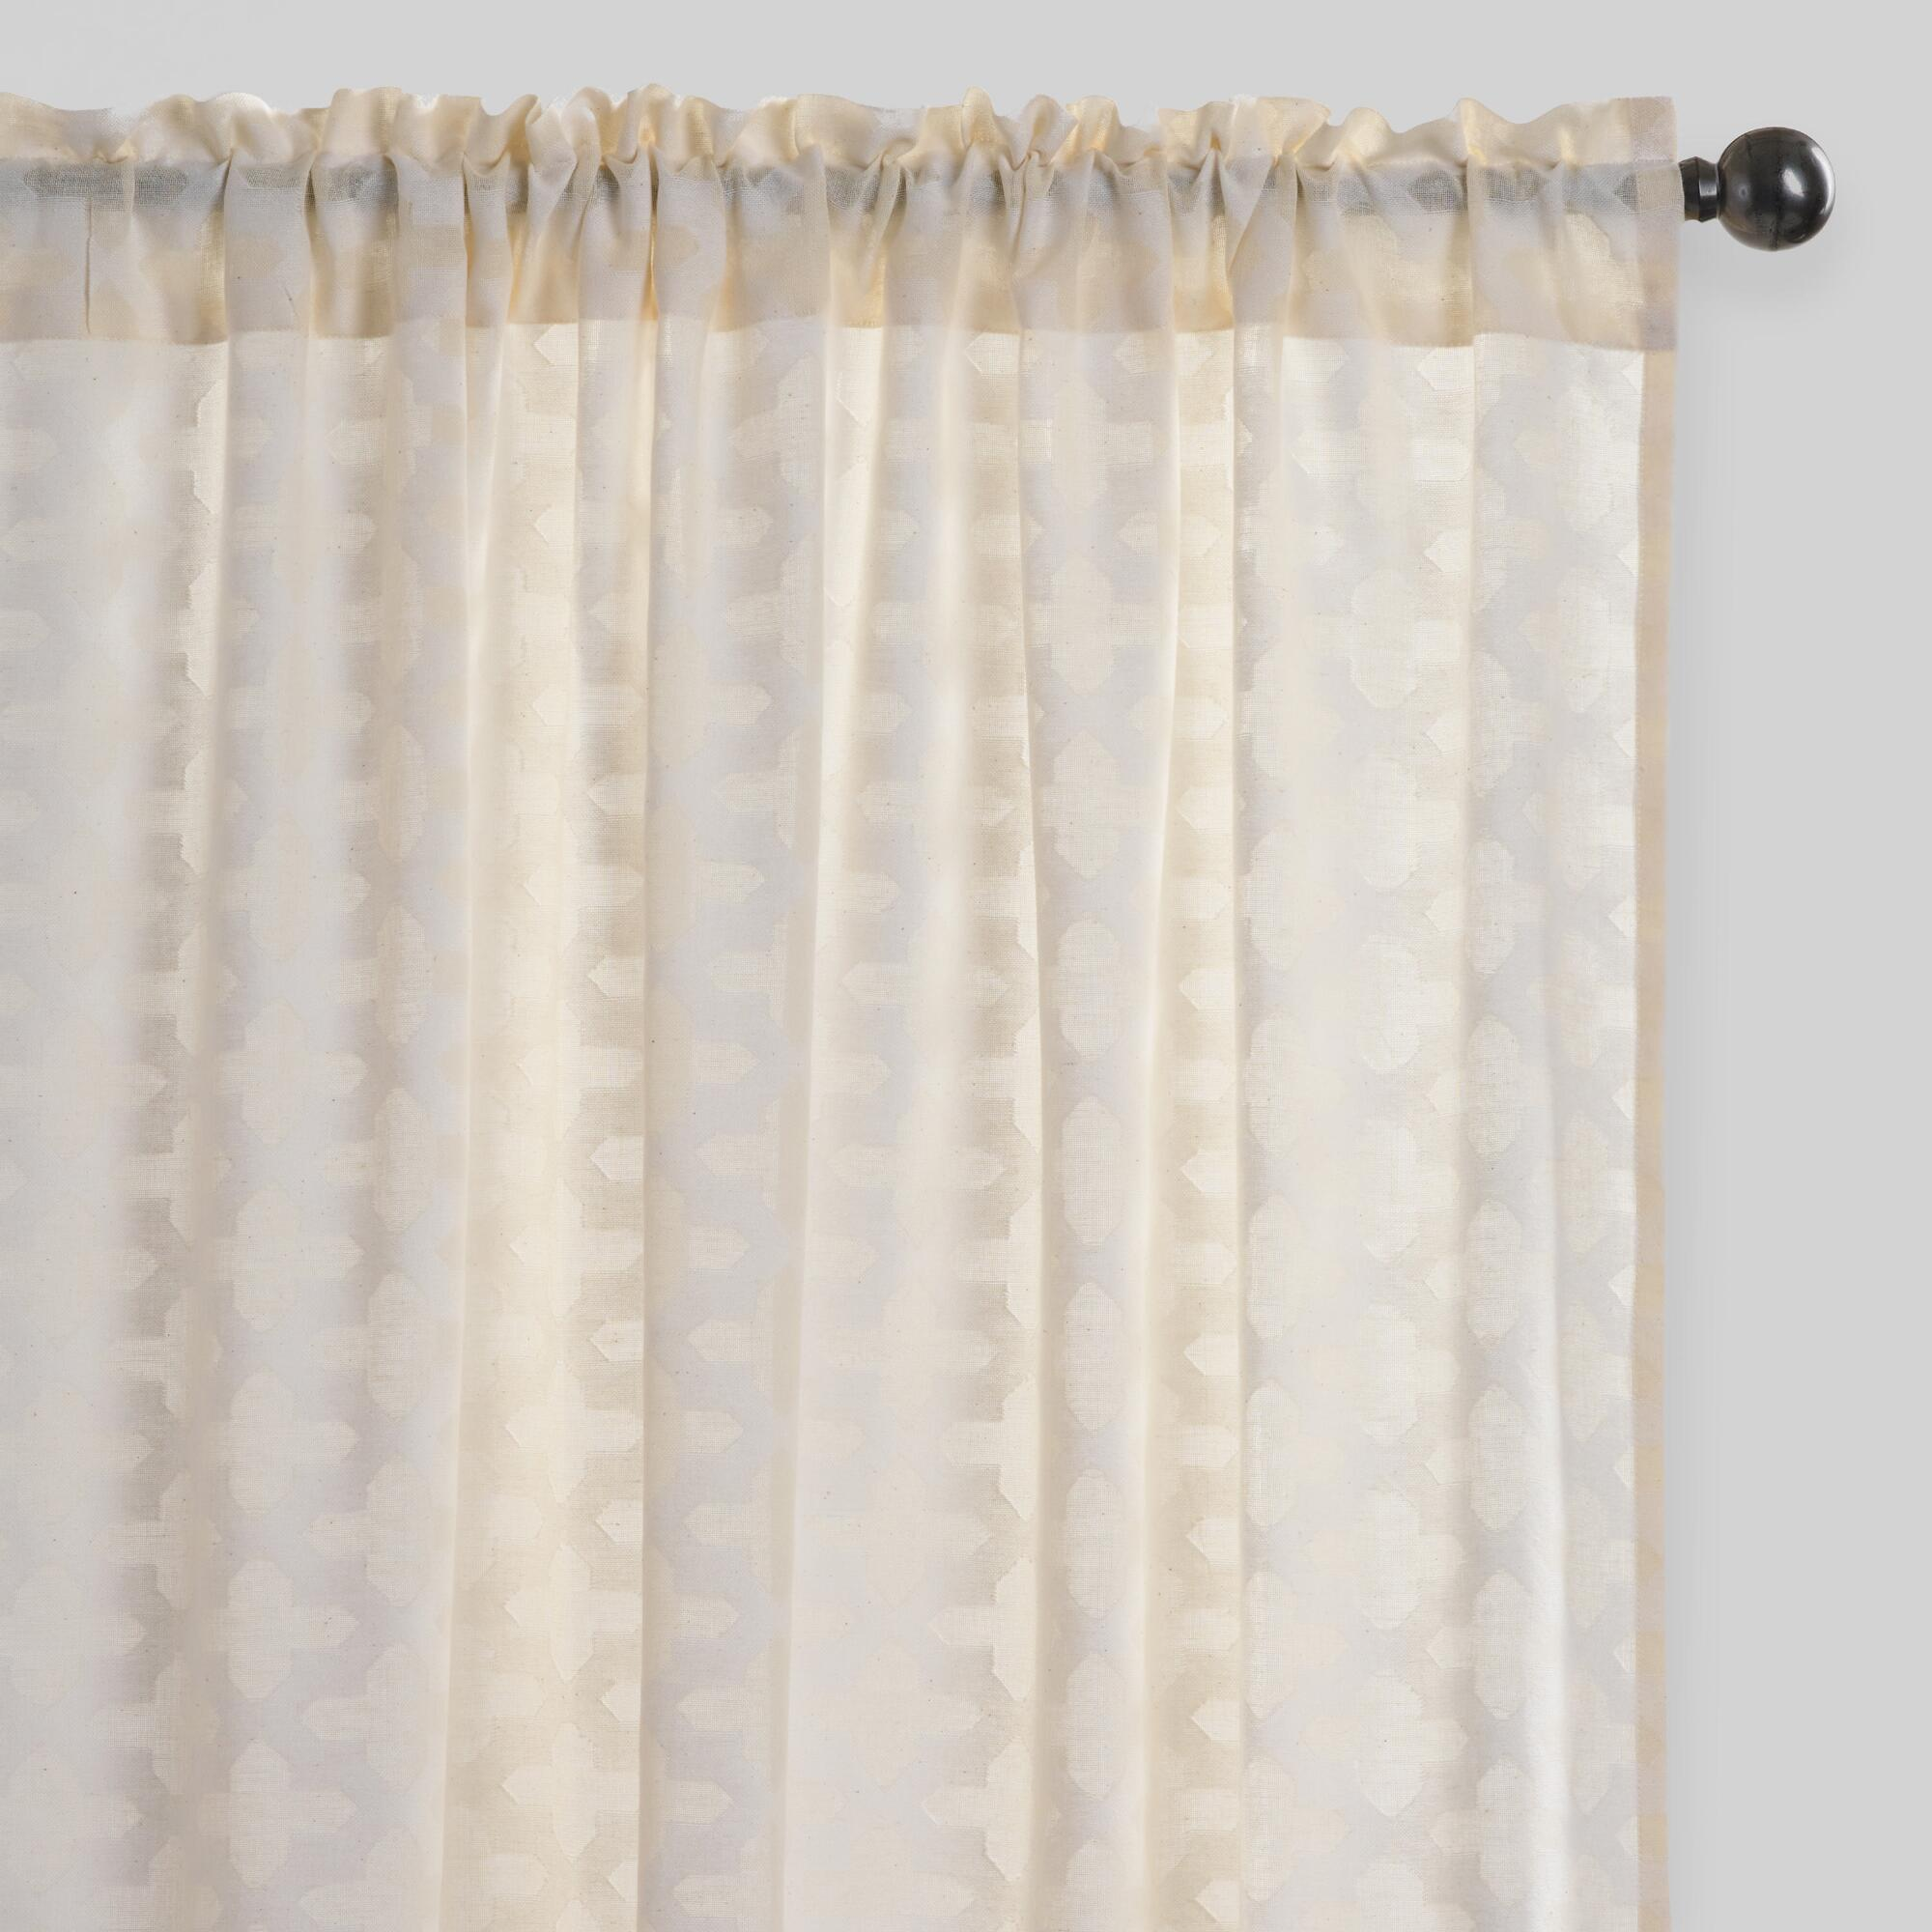 Sheer curtain texture - Arabesque Cutwork Sheer Cotton Curtains Set Of 2